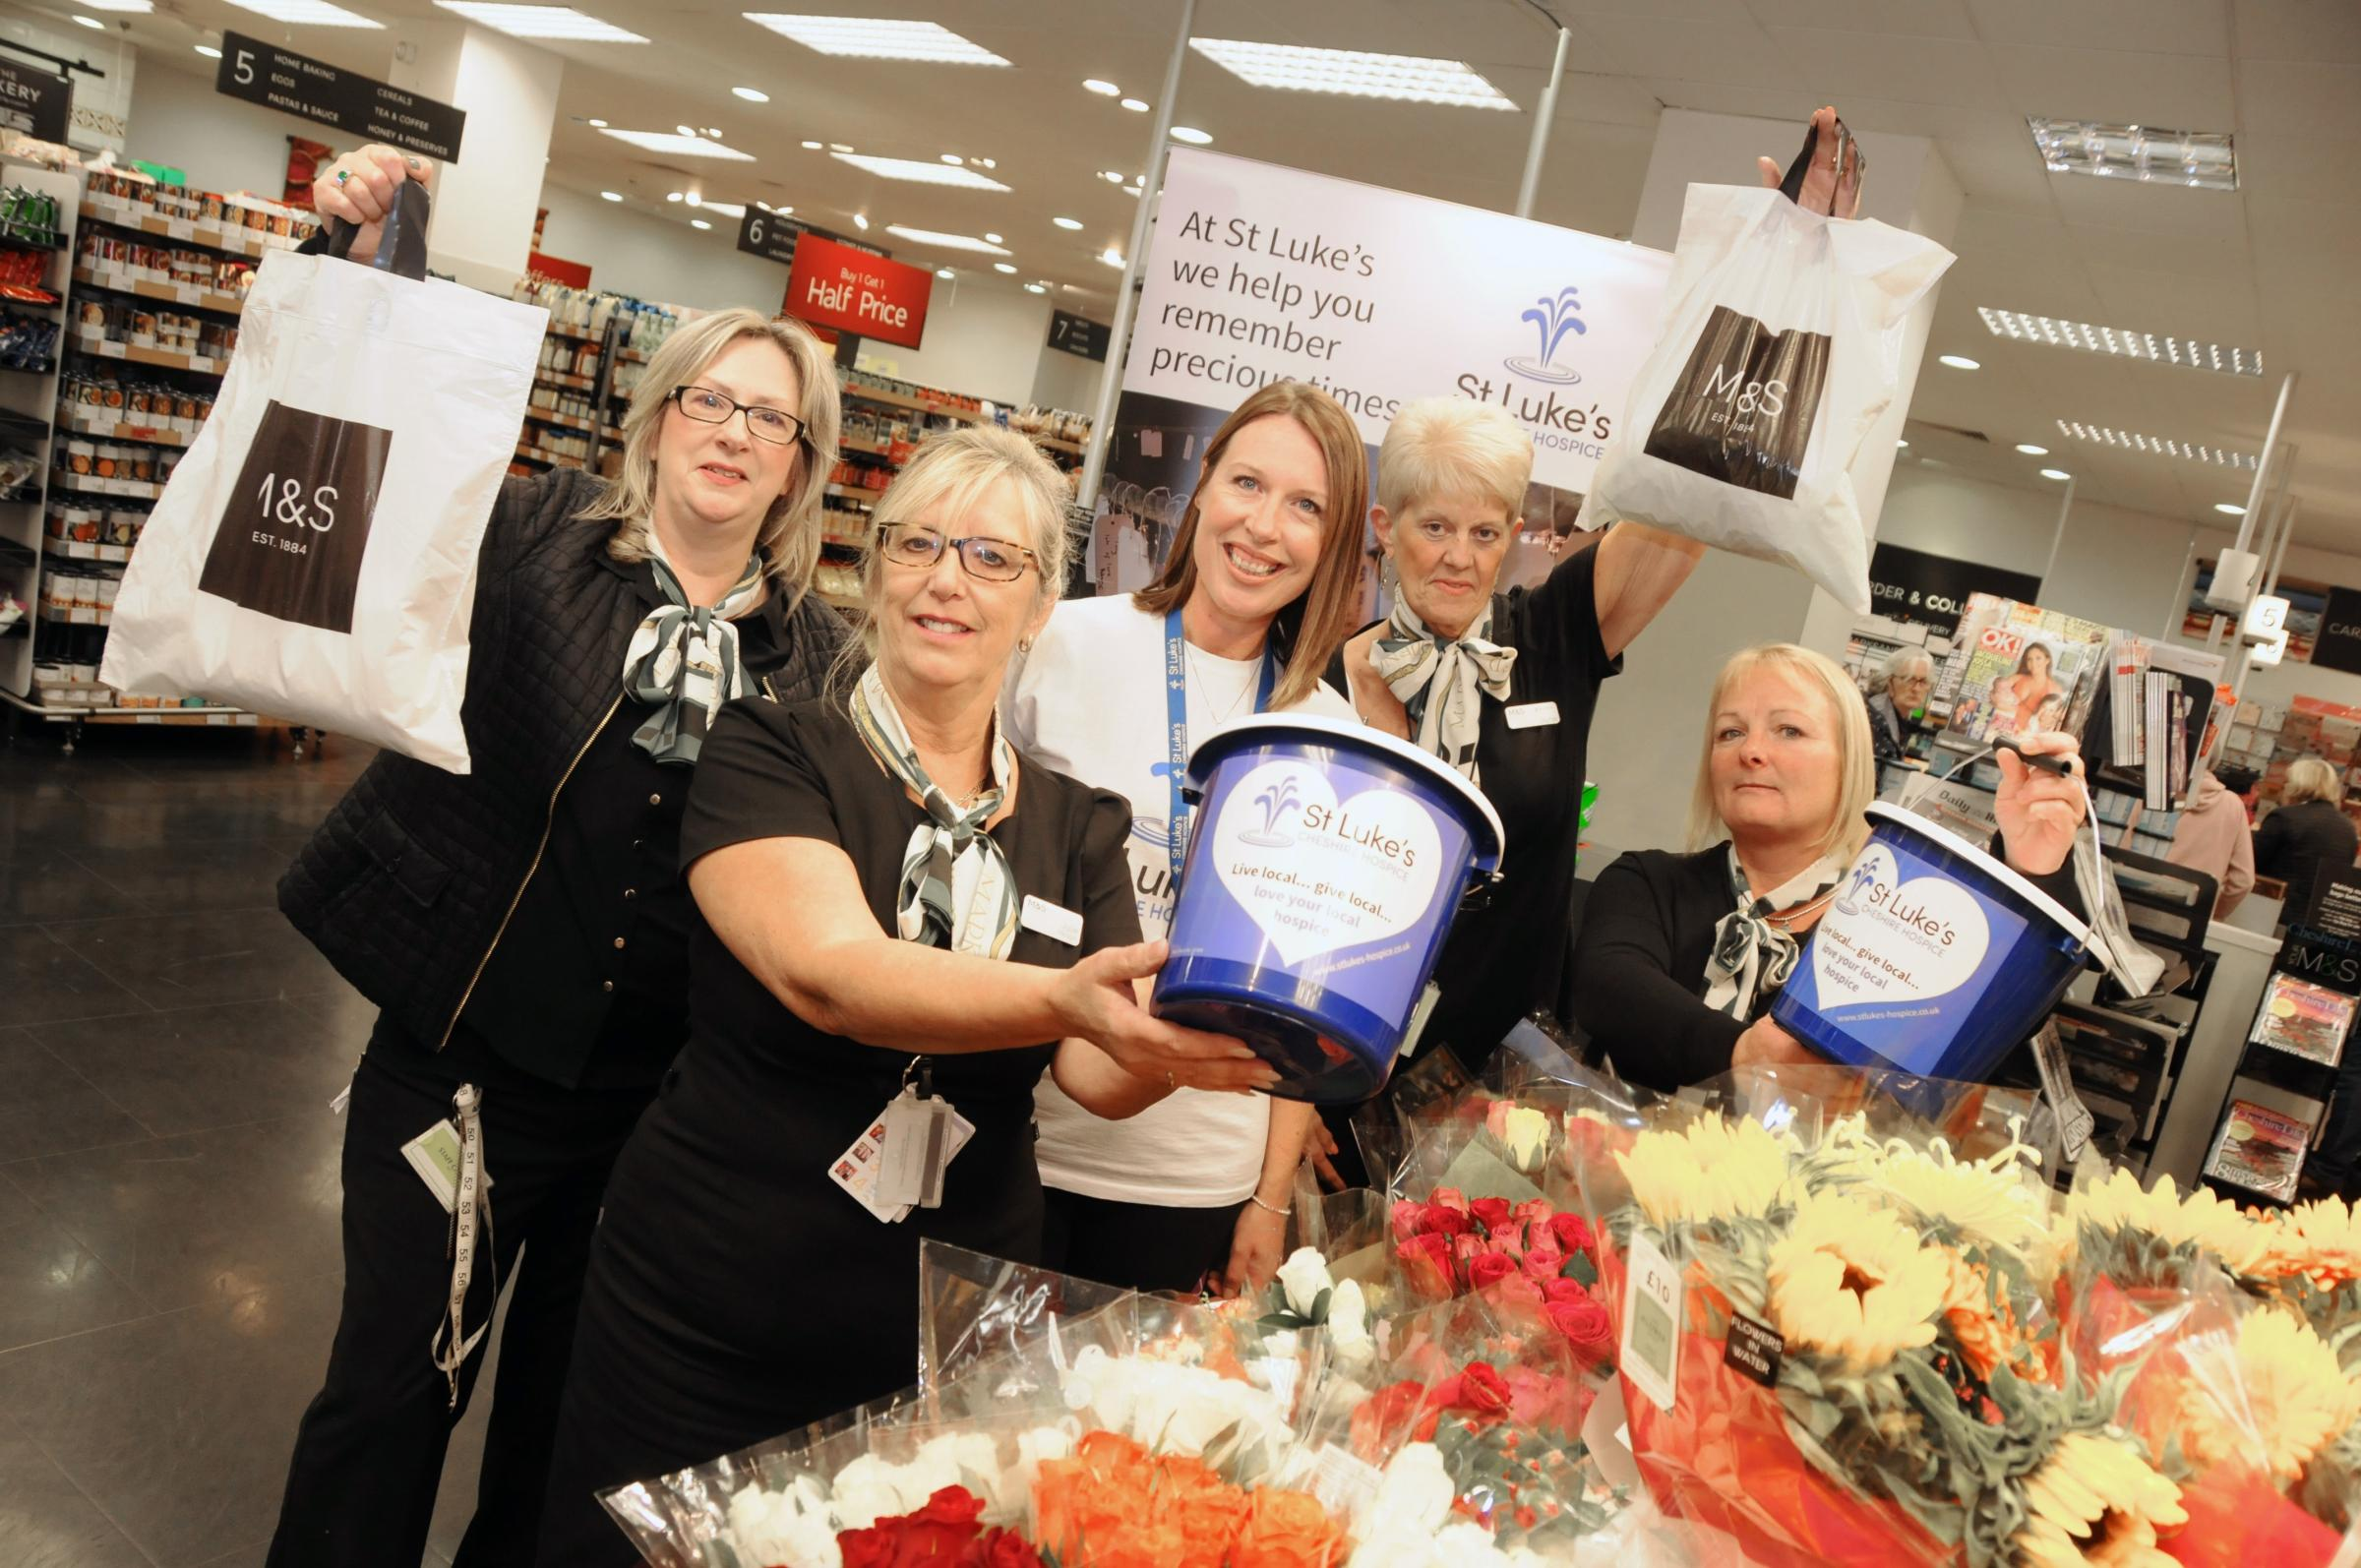 Northwich Marks and Spencer staff raise thousands for St Luke's Hospice